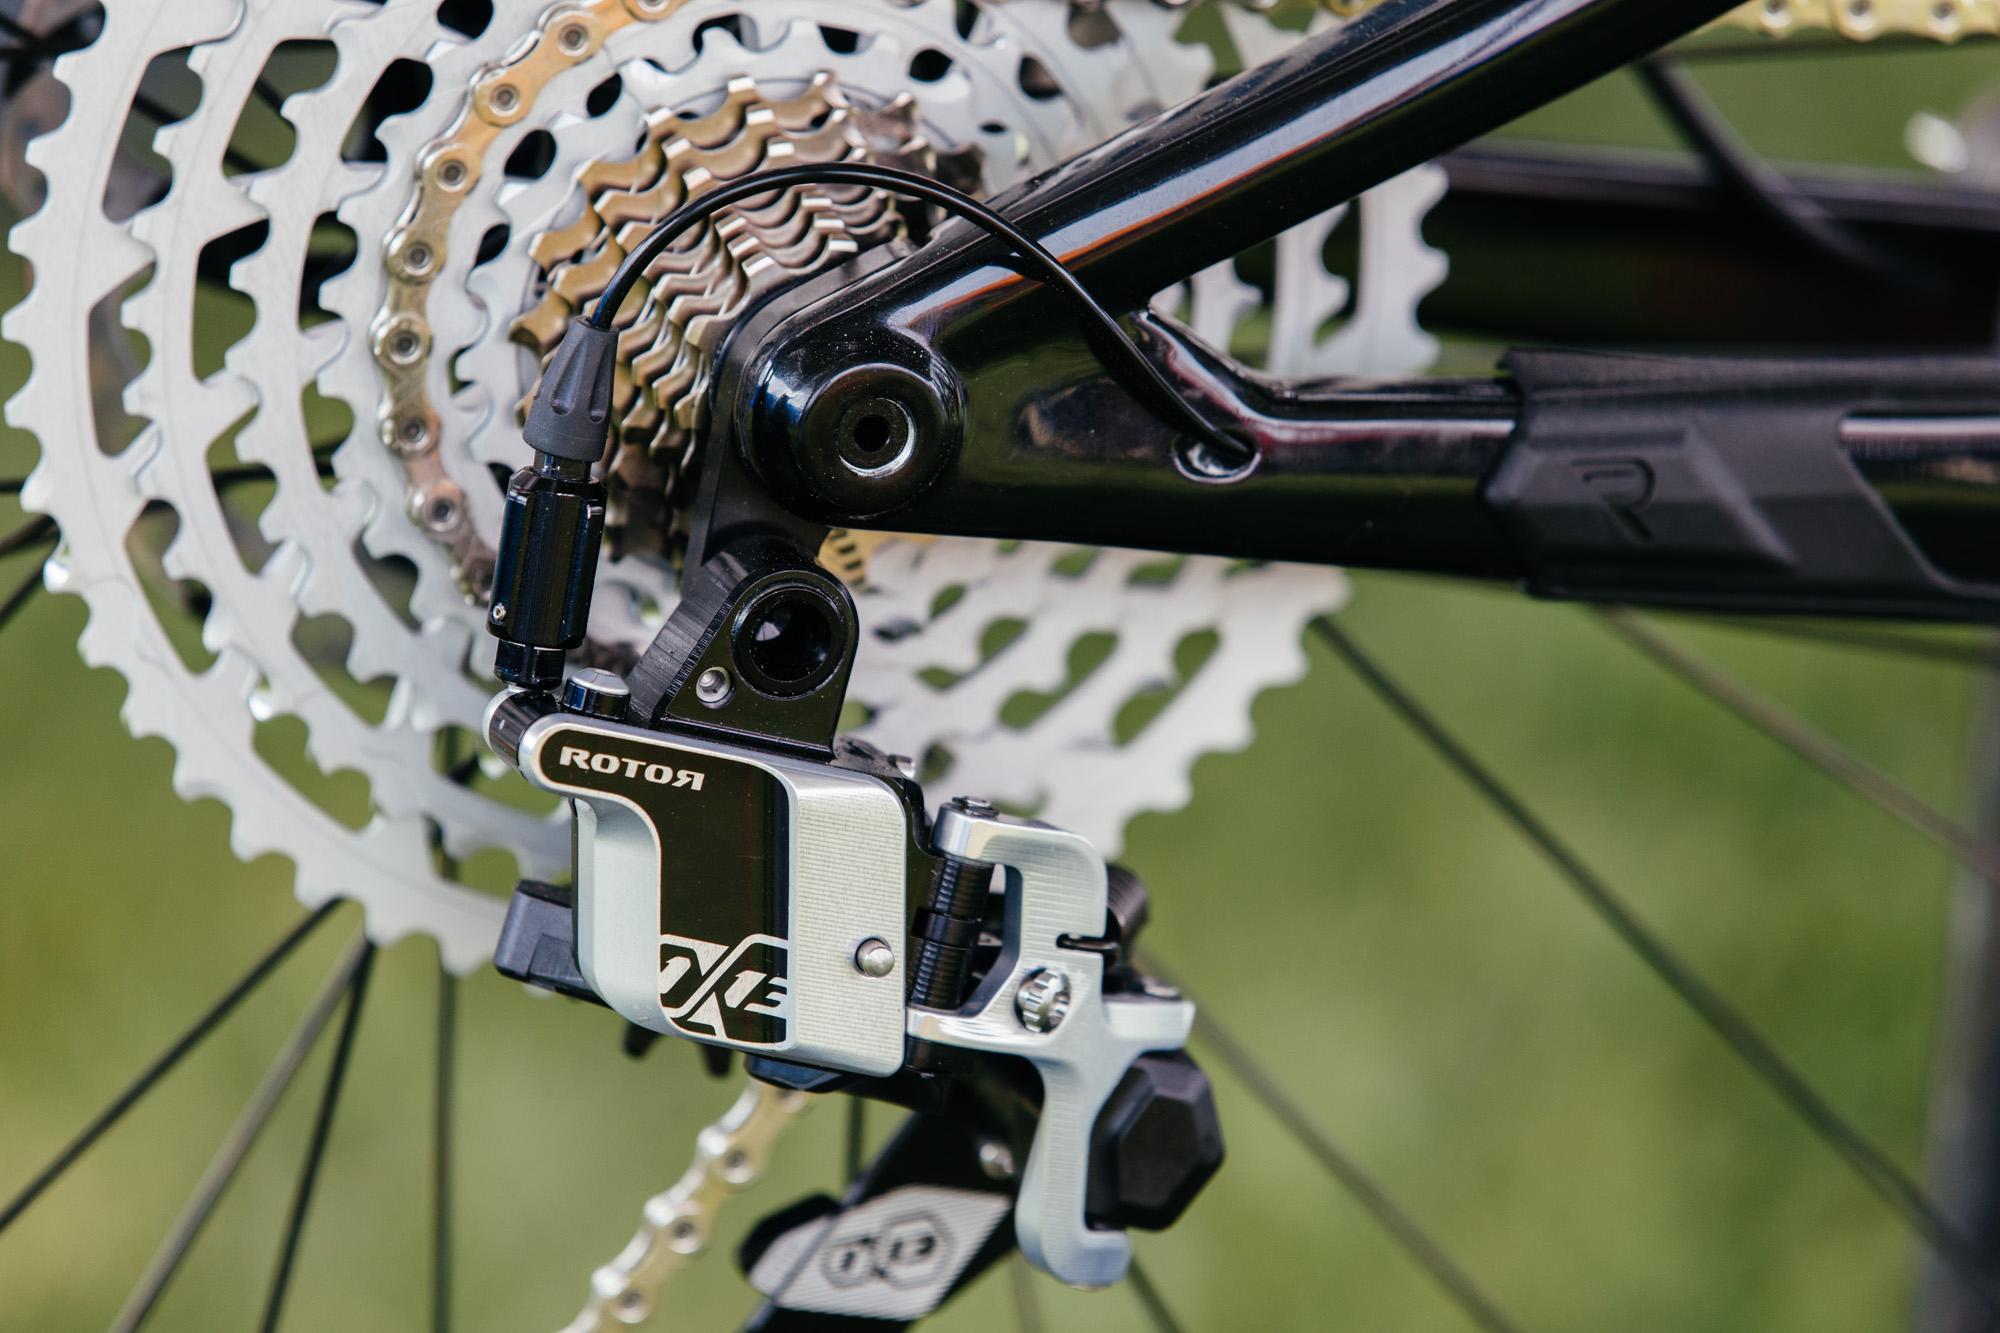 Rotor's 1x13 Road and MTB kit is made in Spain!